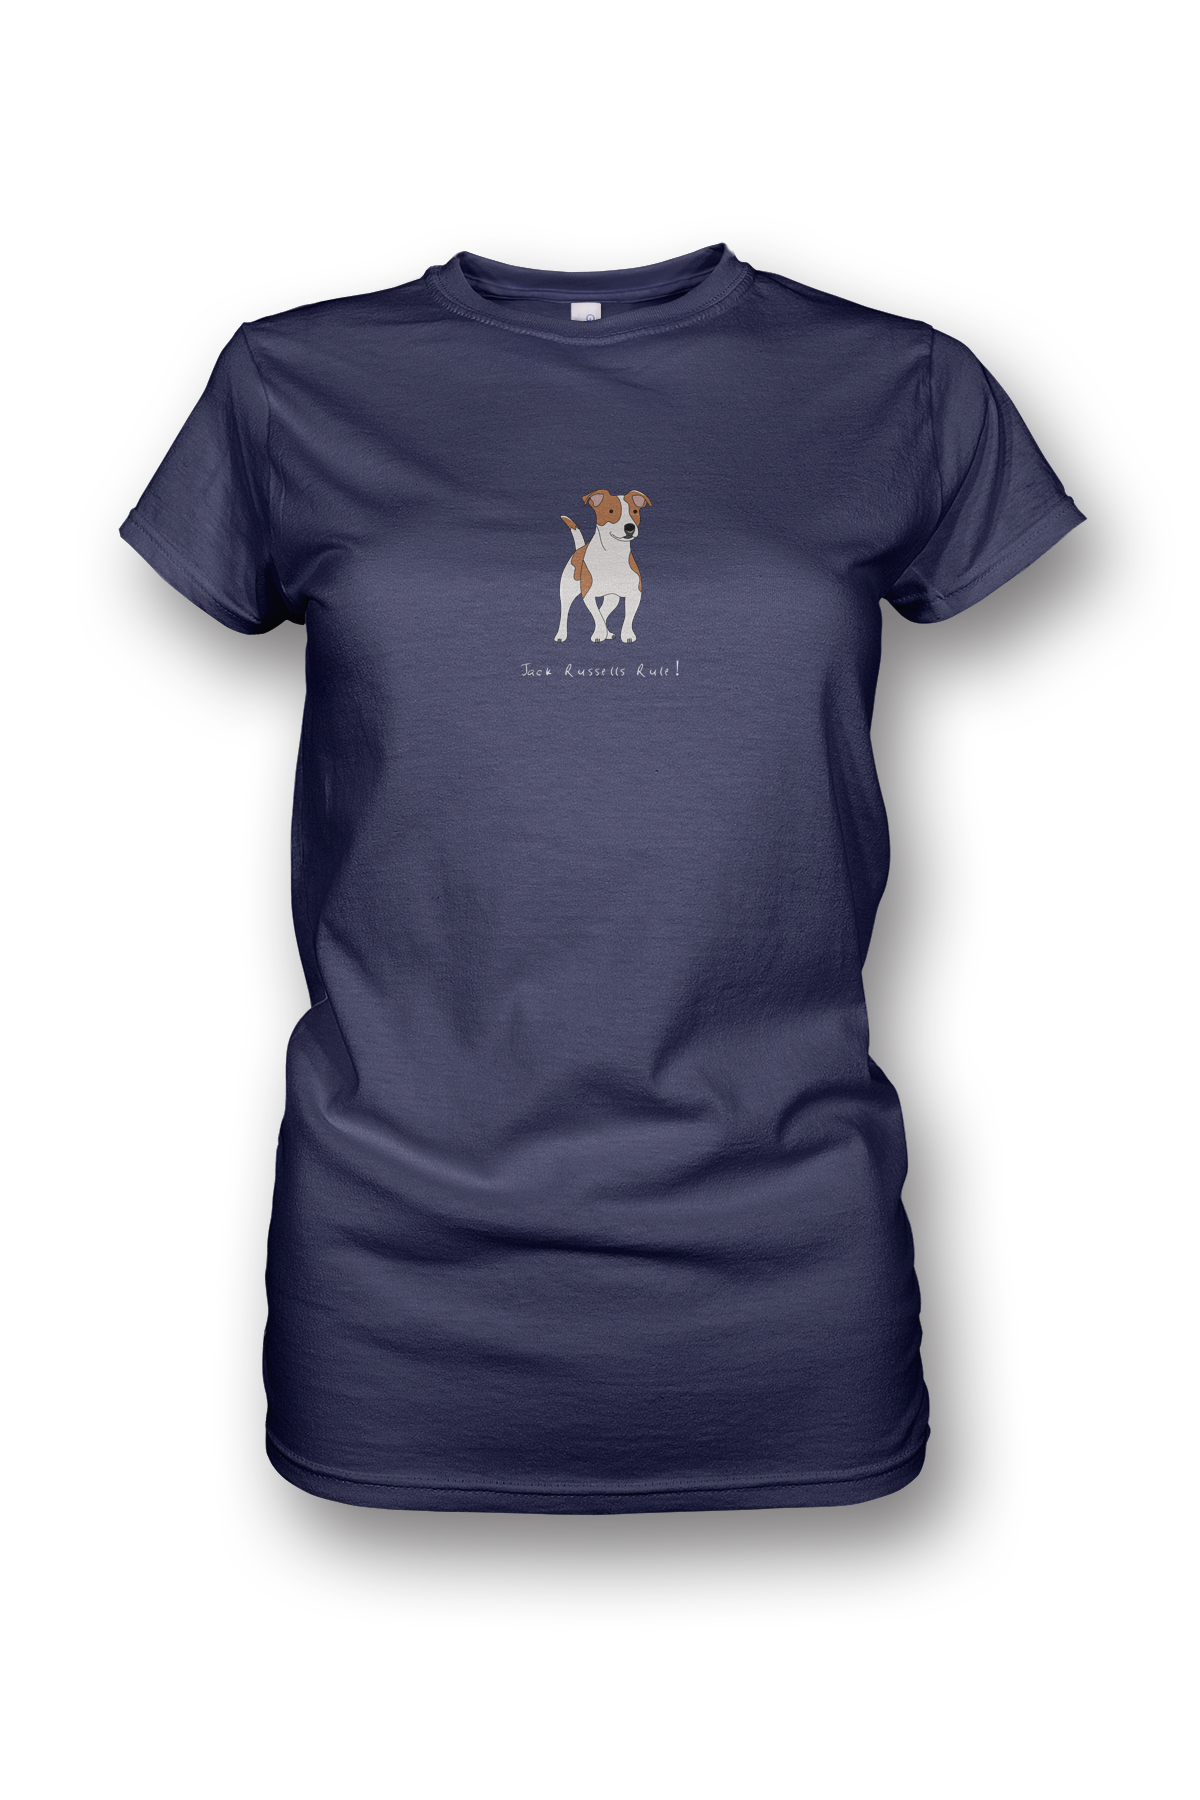 Ladies Crew Neck T-Shirt - Jack Russells Rule! Heather Blue